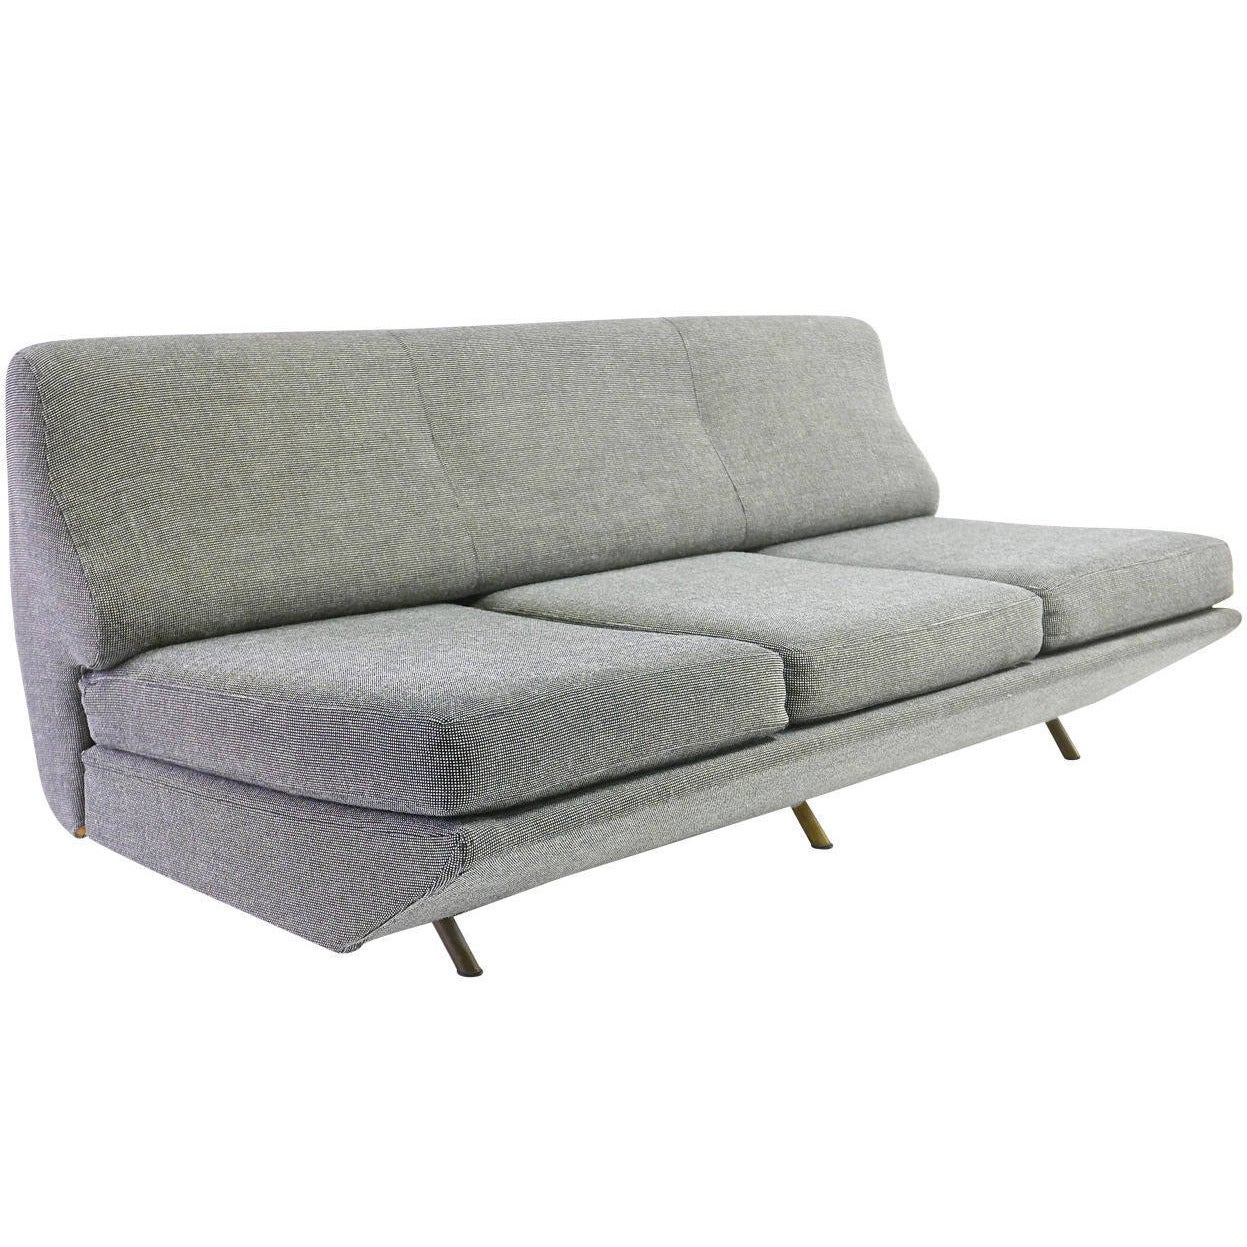 Marco Zanuso \'Sleep-O-Matic\' Sofa for Arflex at 1stdibs